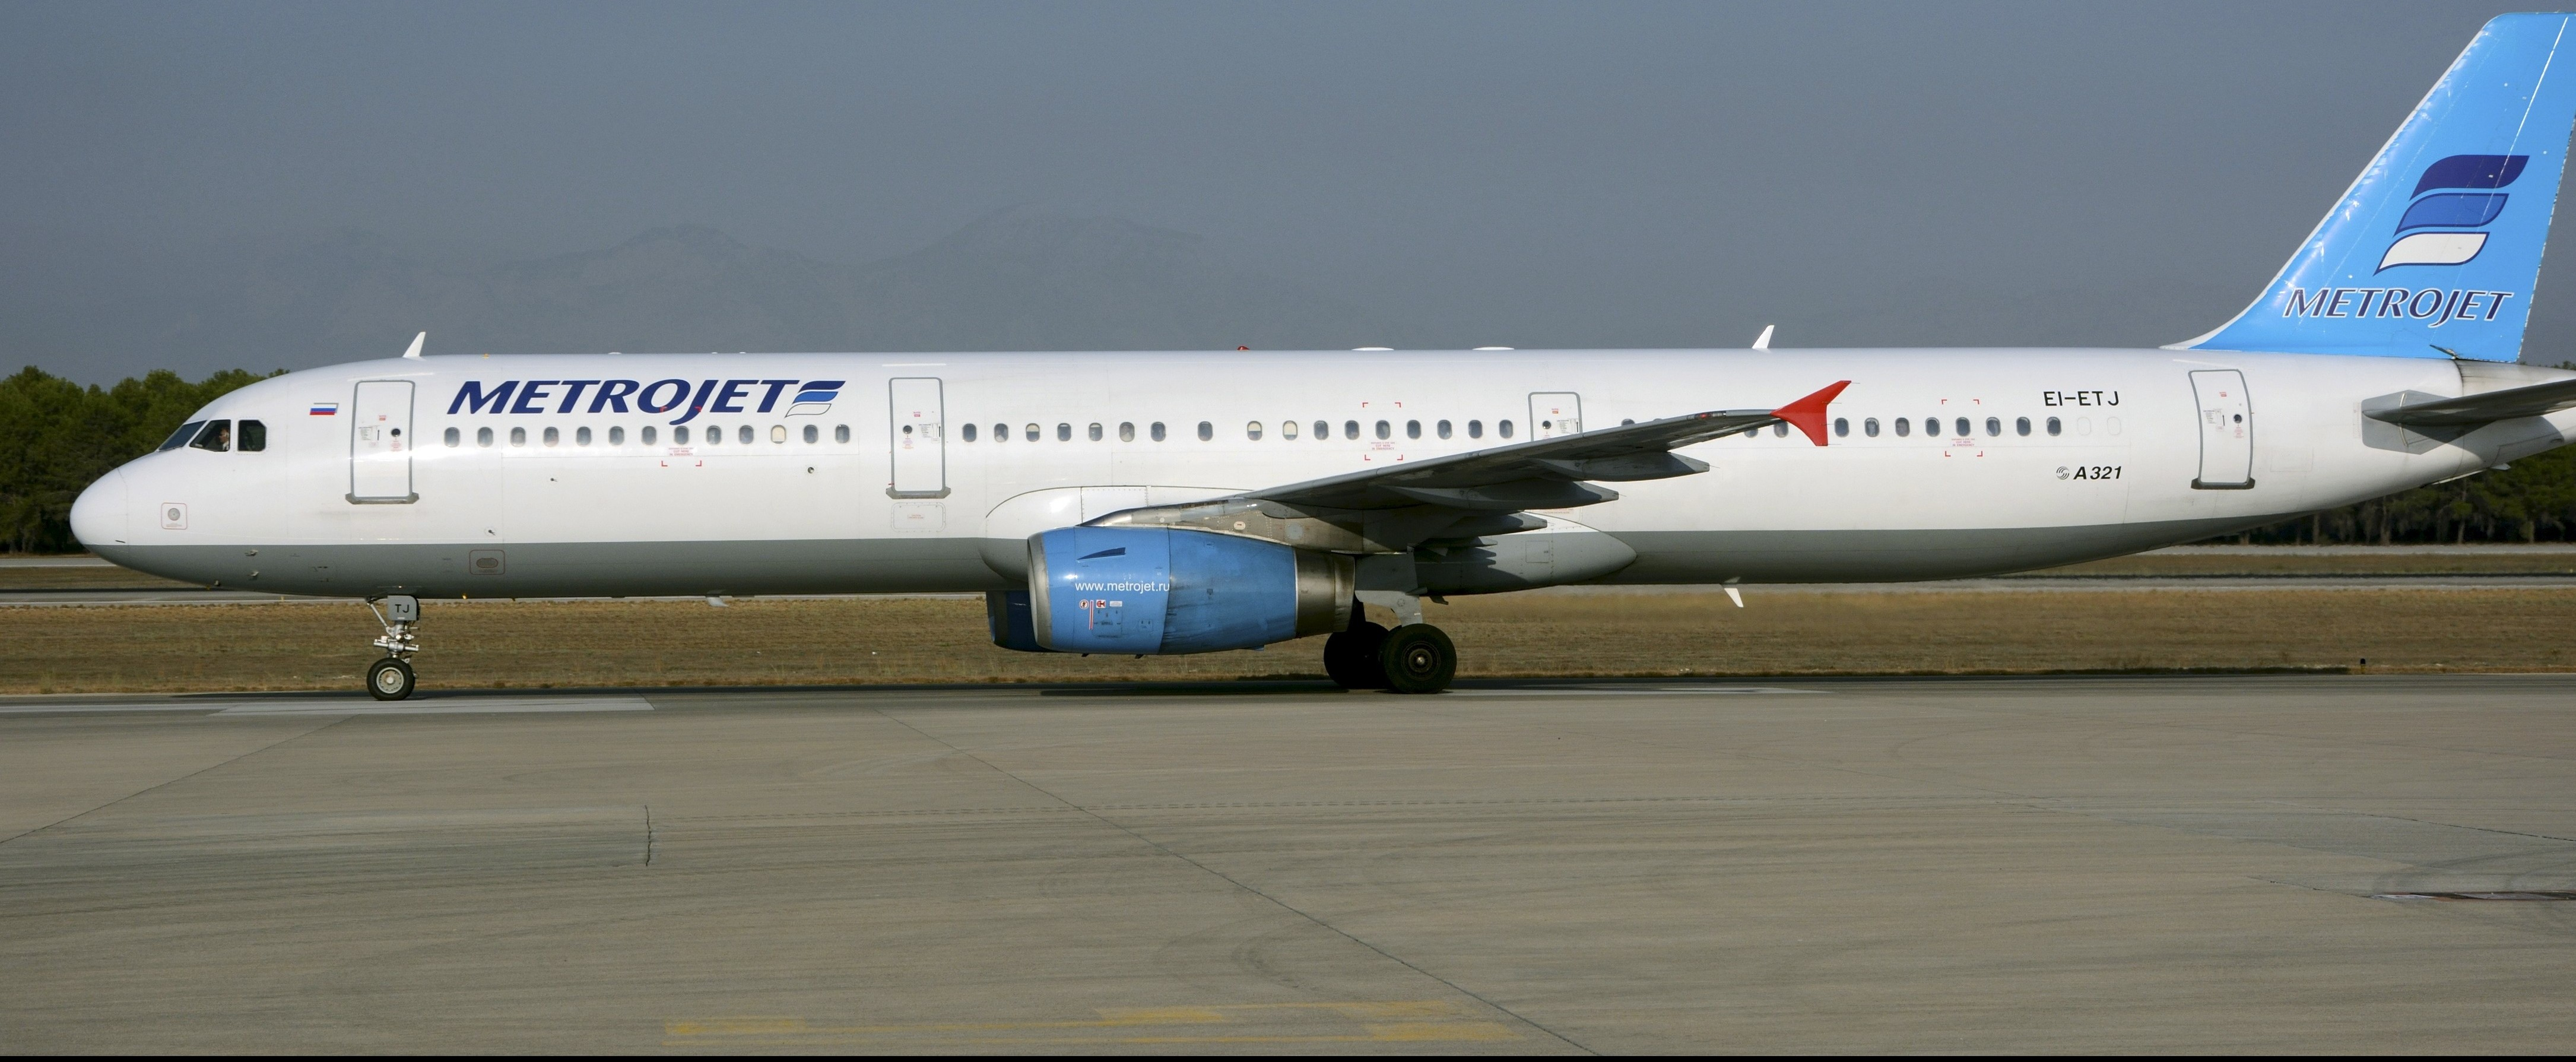 The Metrojet's Airbus A-321 with registration number EI-ETJ that crashed in Egypt's Sinai peninsula, is seen in this picture taken in Antalya, Turkey September 17, 2015. The Russian airliner carrying 224 passengers and crew crashed in Egypt's Sinai peninsula on October 31, 2015, the Egyptian civil aviation authority said, and a security officer who arrived on the scene said all aboard the plane were probably dead. The Airbus A-321, operated by Russian airline Kogalymavia with the flight number 7K9268, was flying from the Sinai Red Sea resort of Sharm el-Sheikh to St Petersburg in Russia when it went down in a desolate mountainous area of central Sinai soon after daybreak, the aviation ministry said. Picture taken September 17, 2015. REUTERS/Kim Philipp Piskol      TPX IMAGES OF THE DAY      - RTX1U2U8